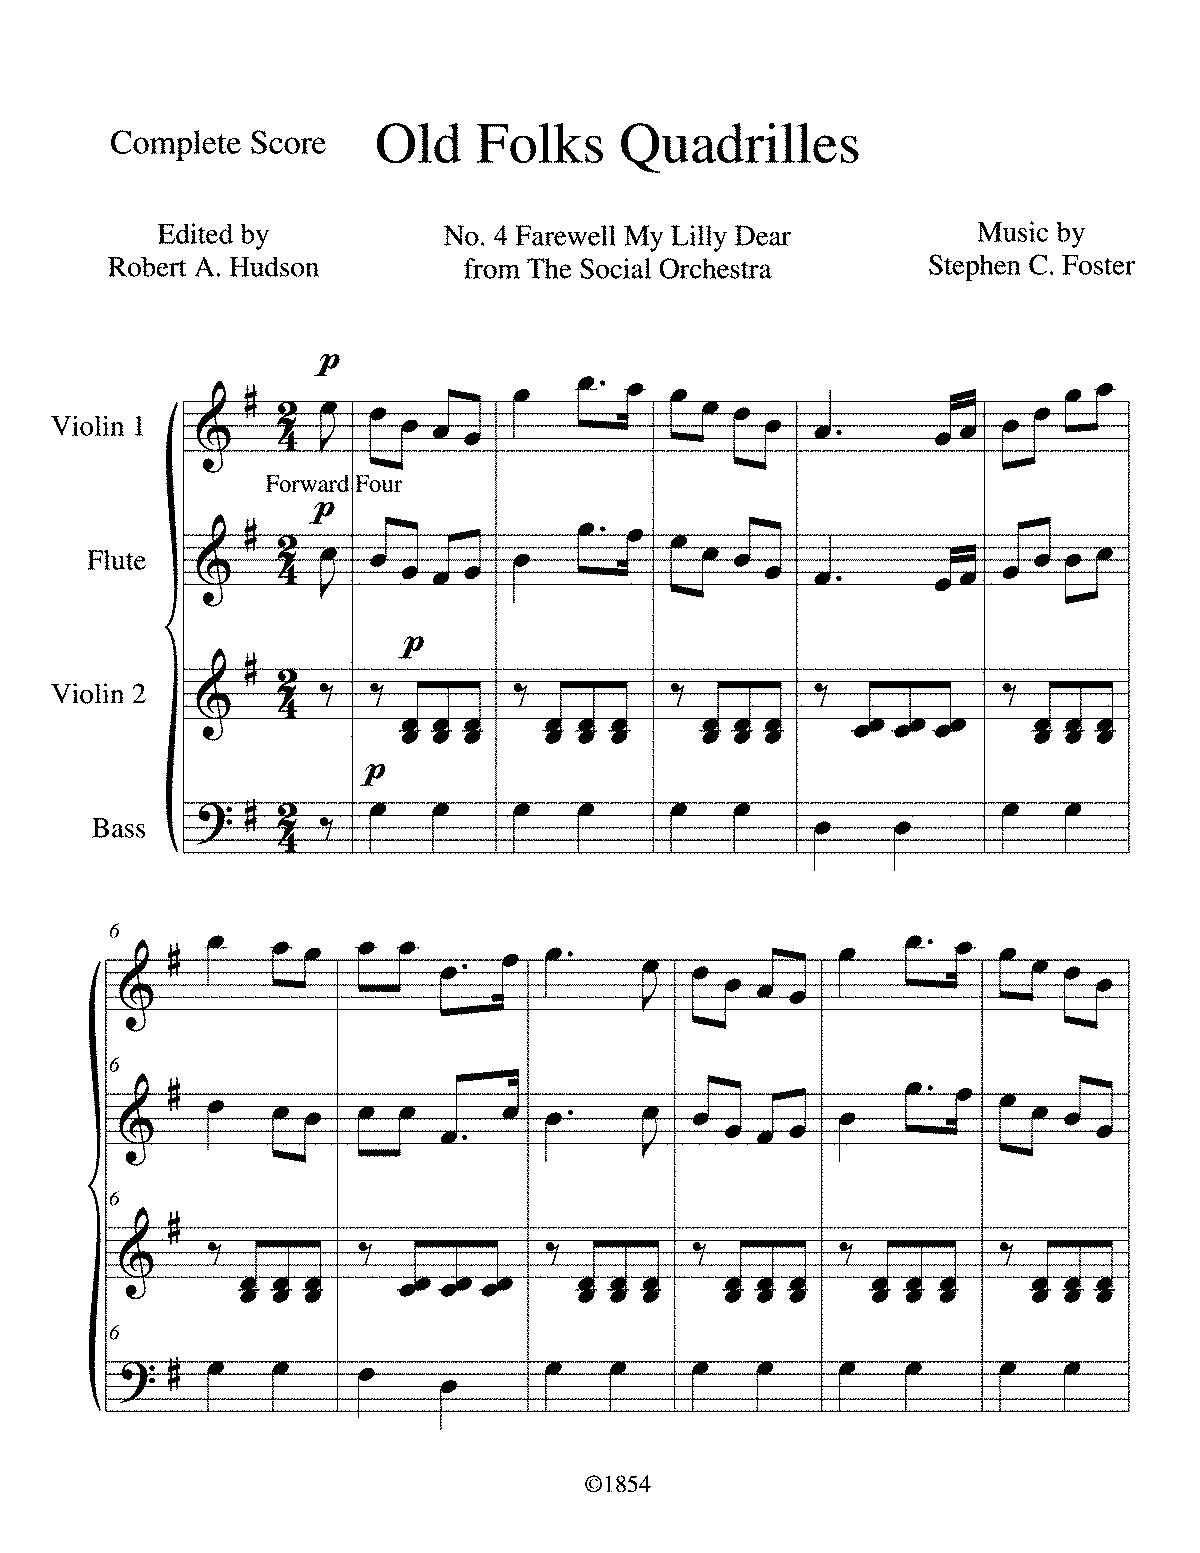 PMLP396869-No 4 Farewell My Lilly Dear - Complete Score.pdf